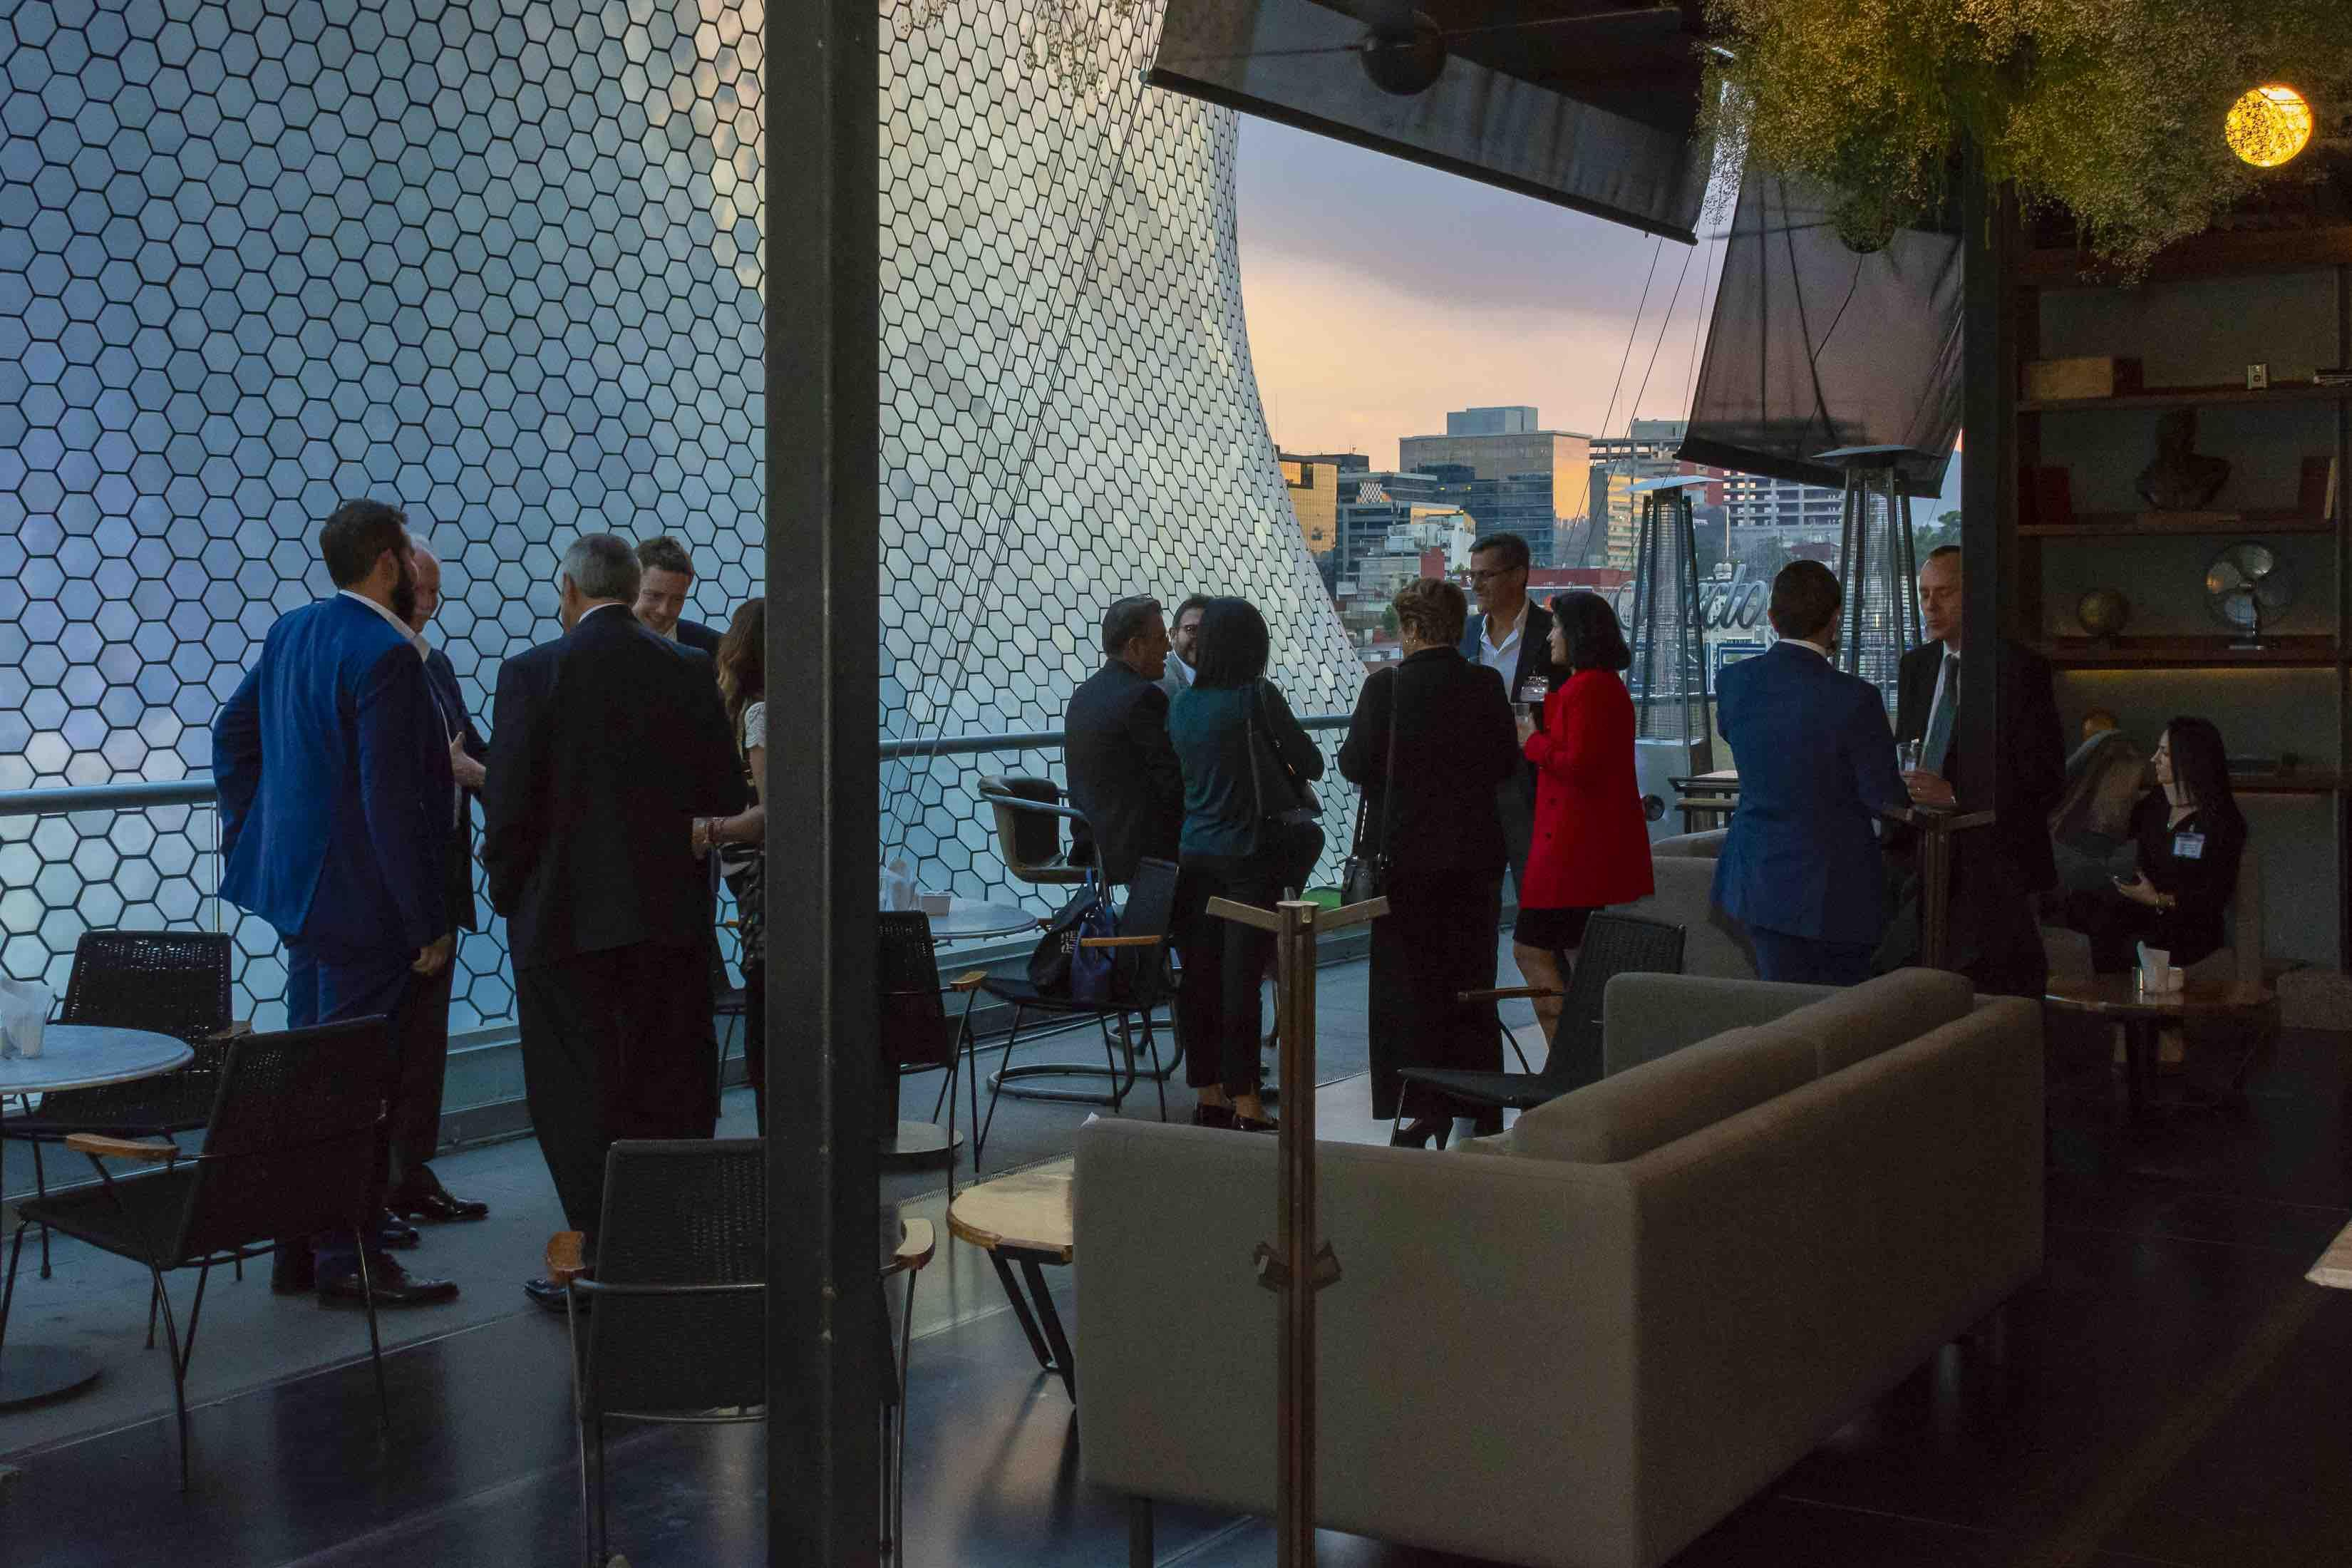 To celebrate the opening of an office in Mexico City, Siem Car Carriers hosted a reception for its customers in Polanco.